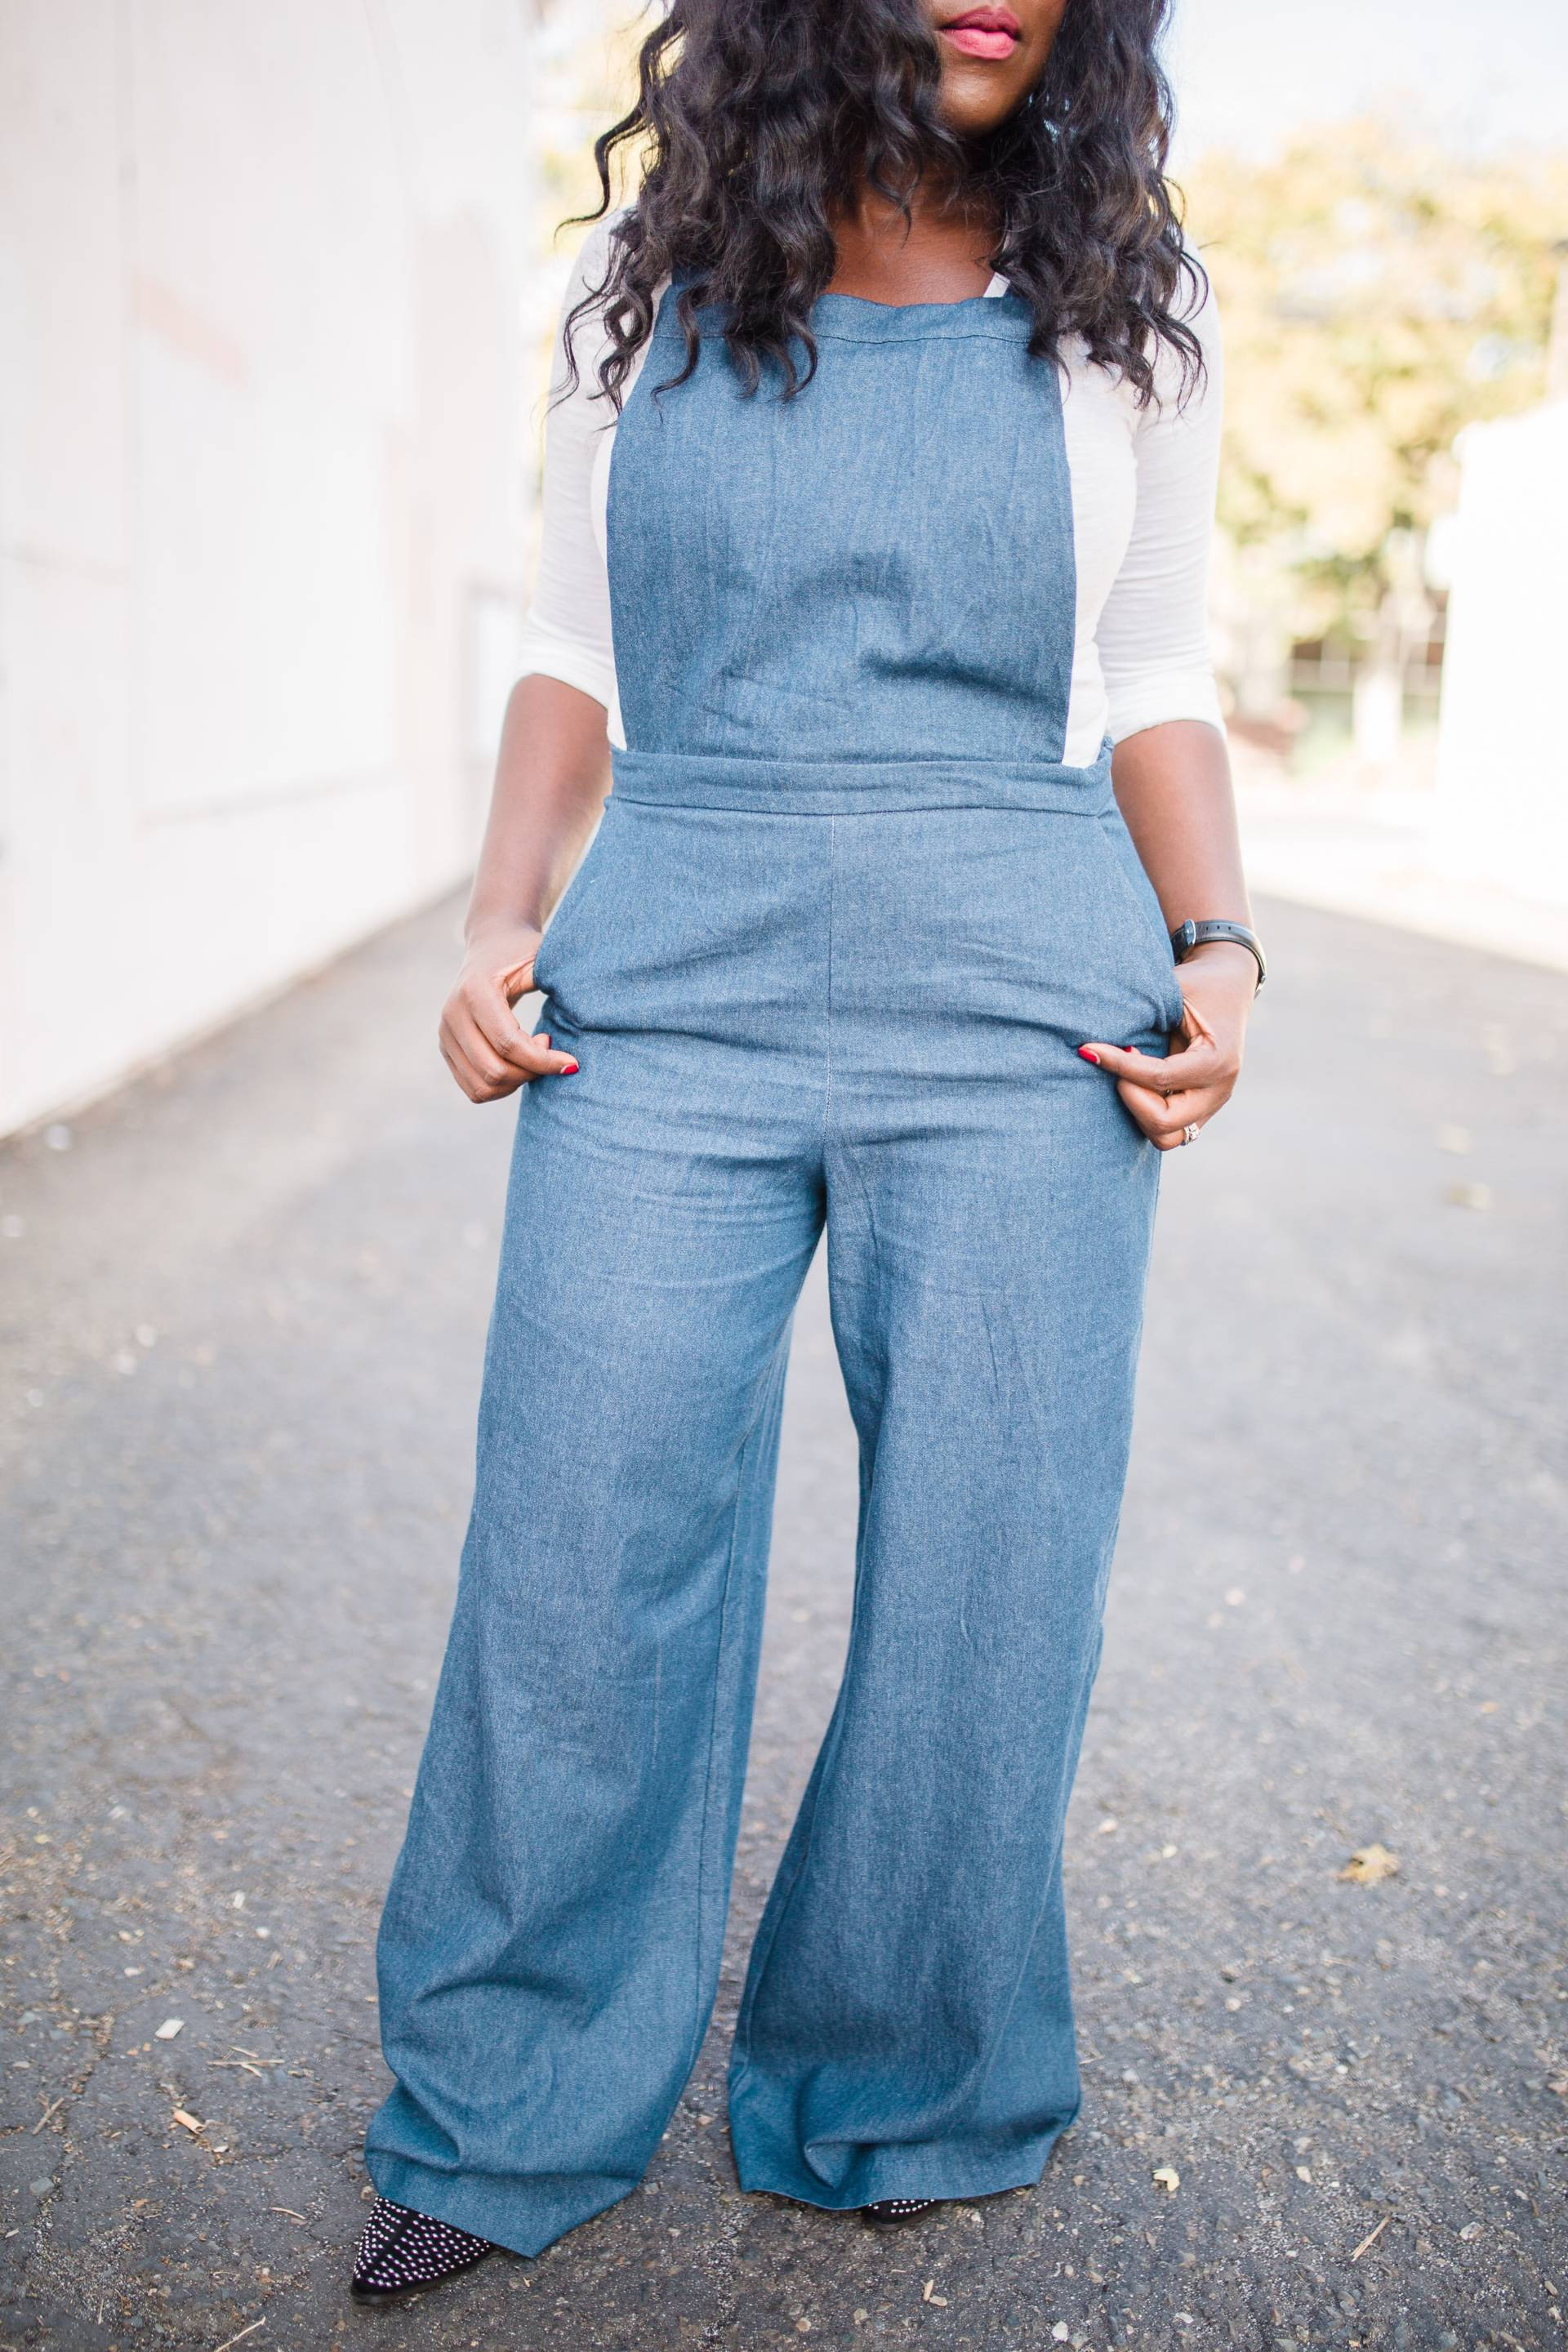 overalls-fashion- ruthie ridley blog